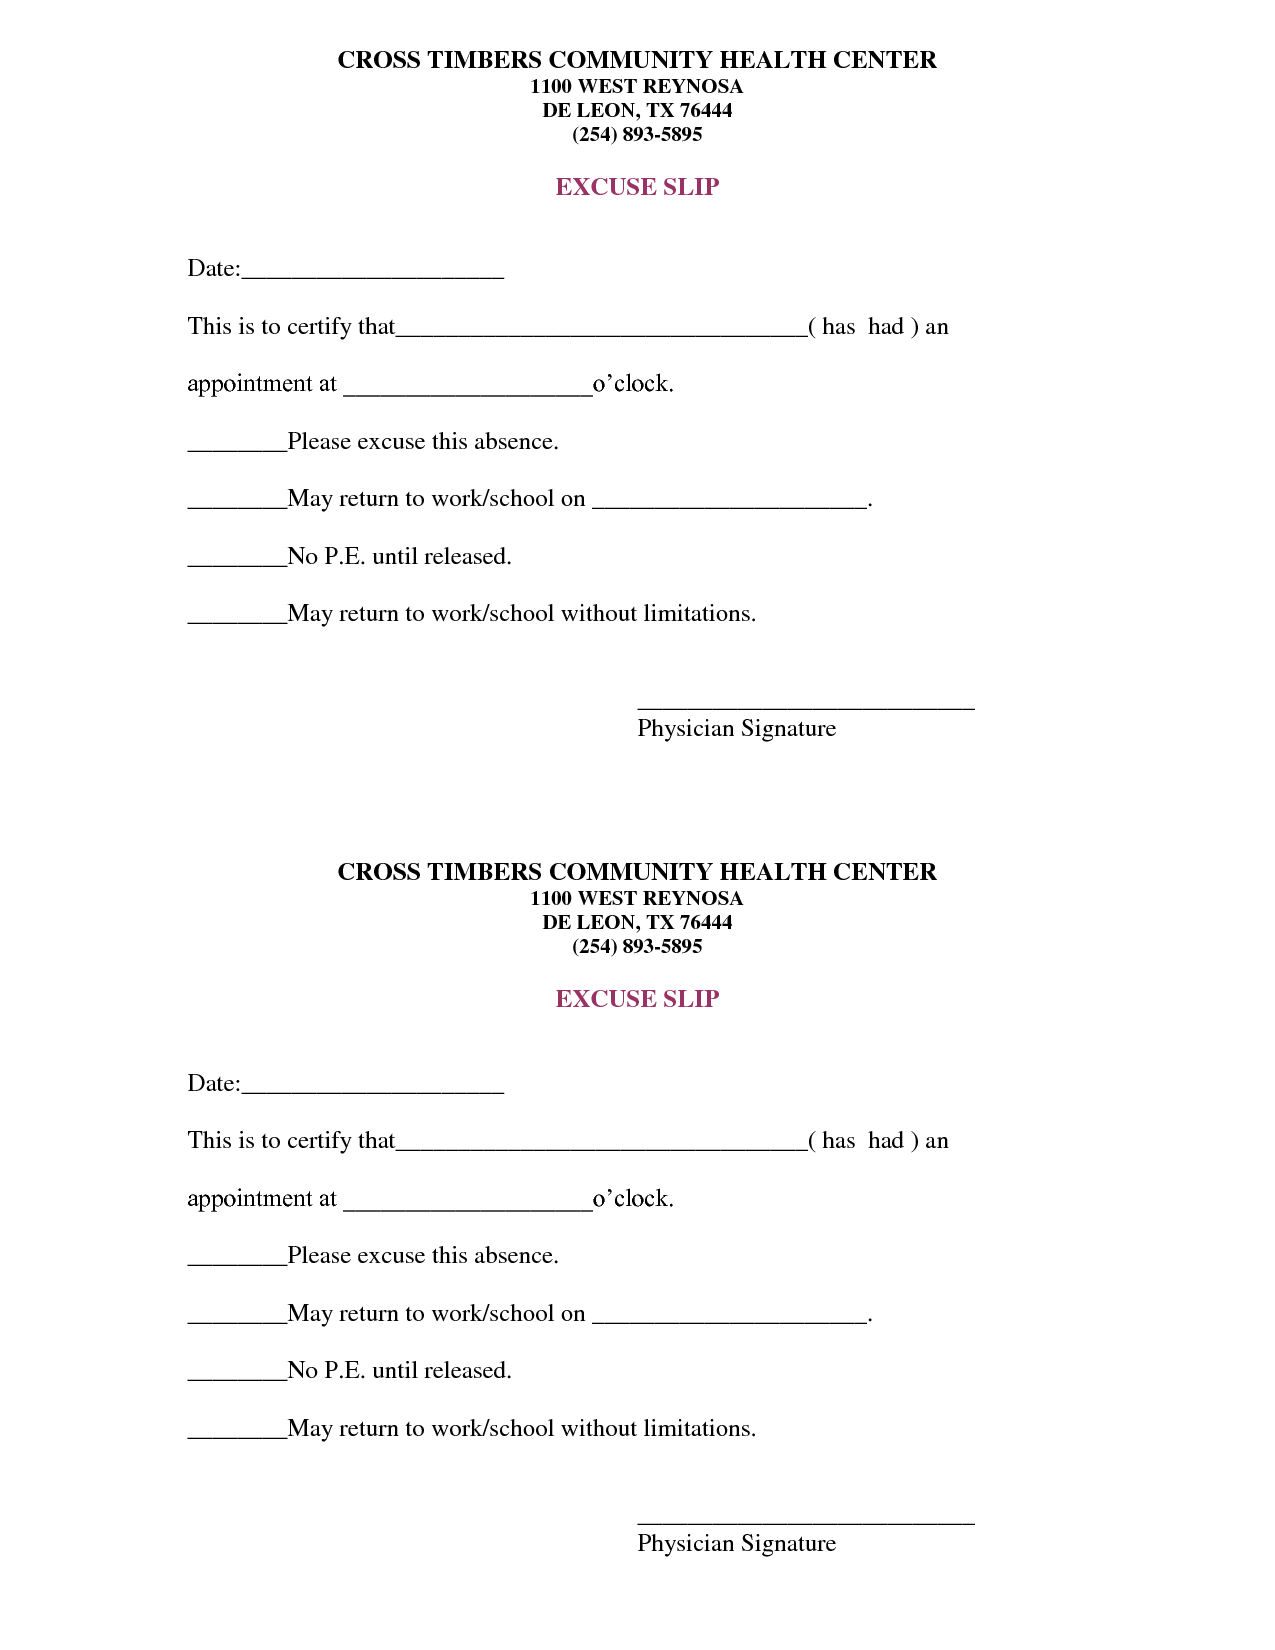 Free Doctors Note Template | Scope Of Work Template | On The Run - Free Printable Doctor Excuse Slips